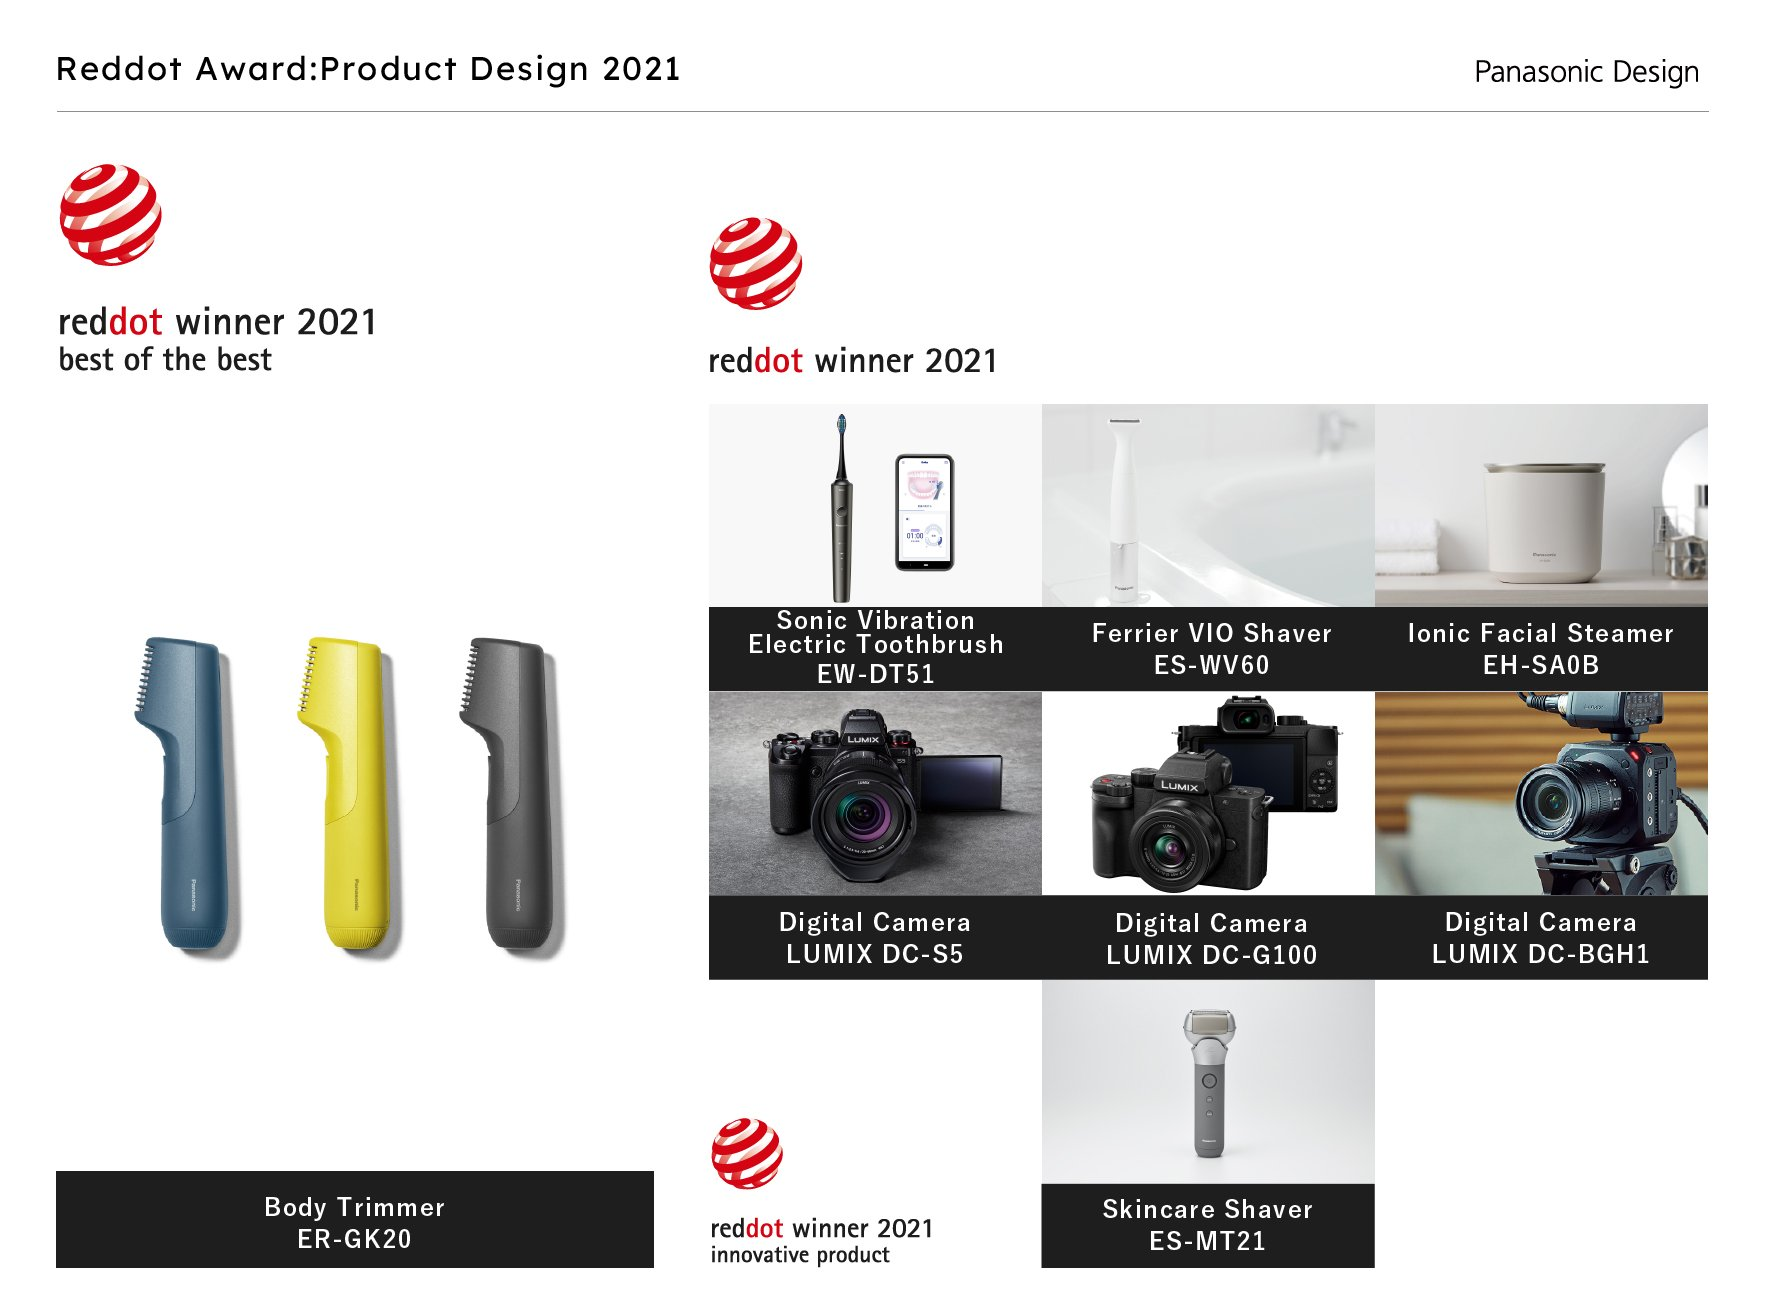 Eight products that received the Red Dot Award 2021: Product Design.